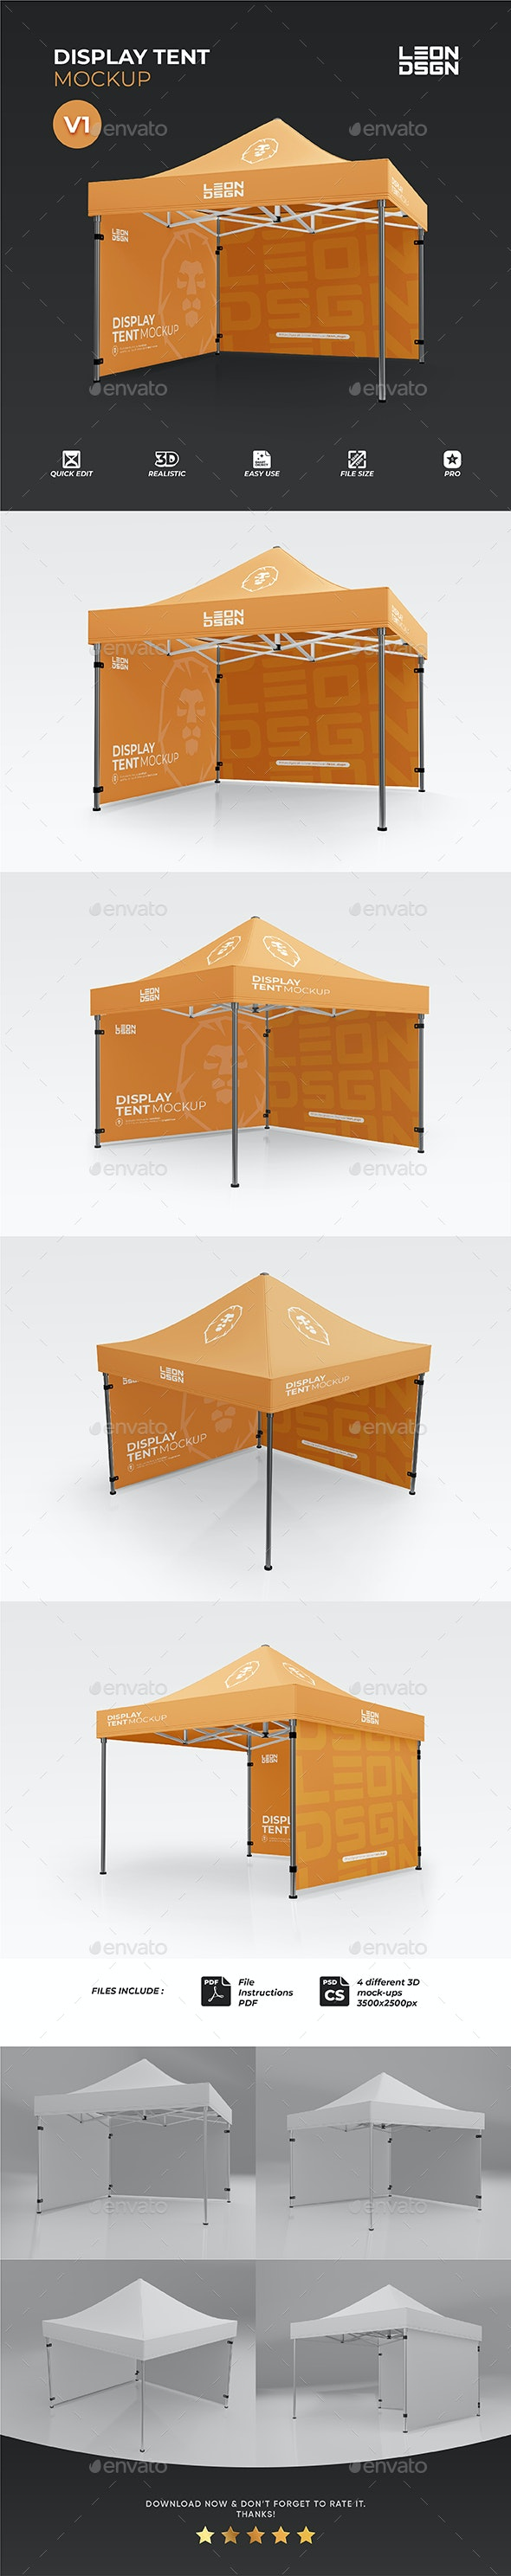 Display Tent Mockup - Miscellaneous Print